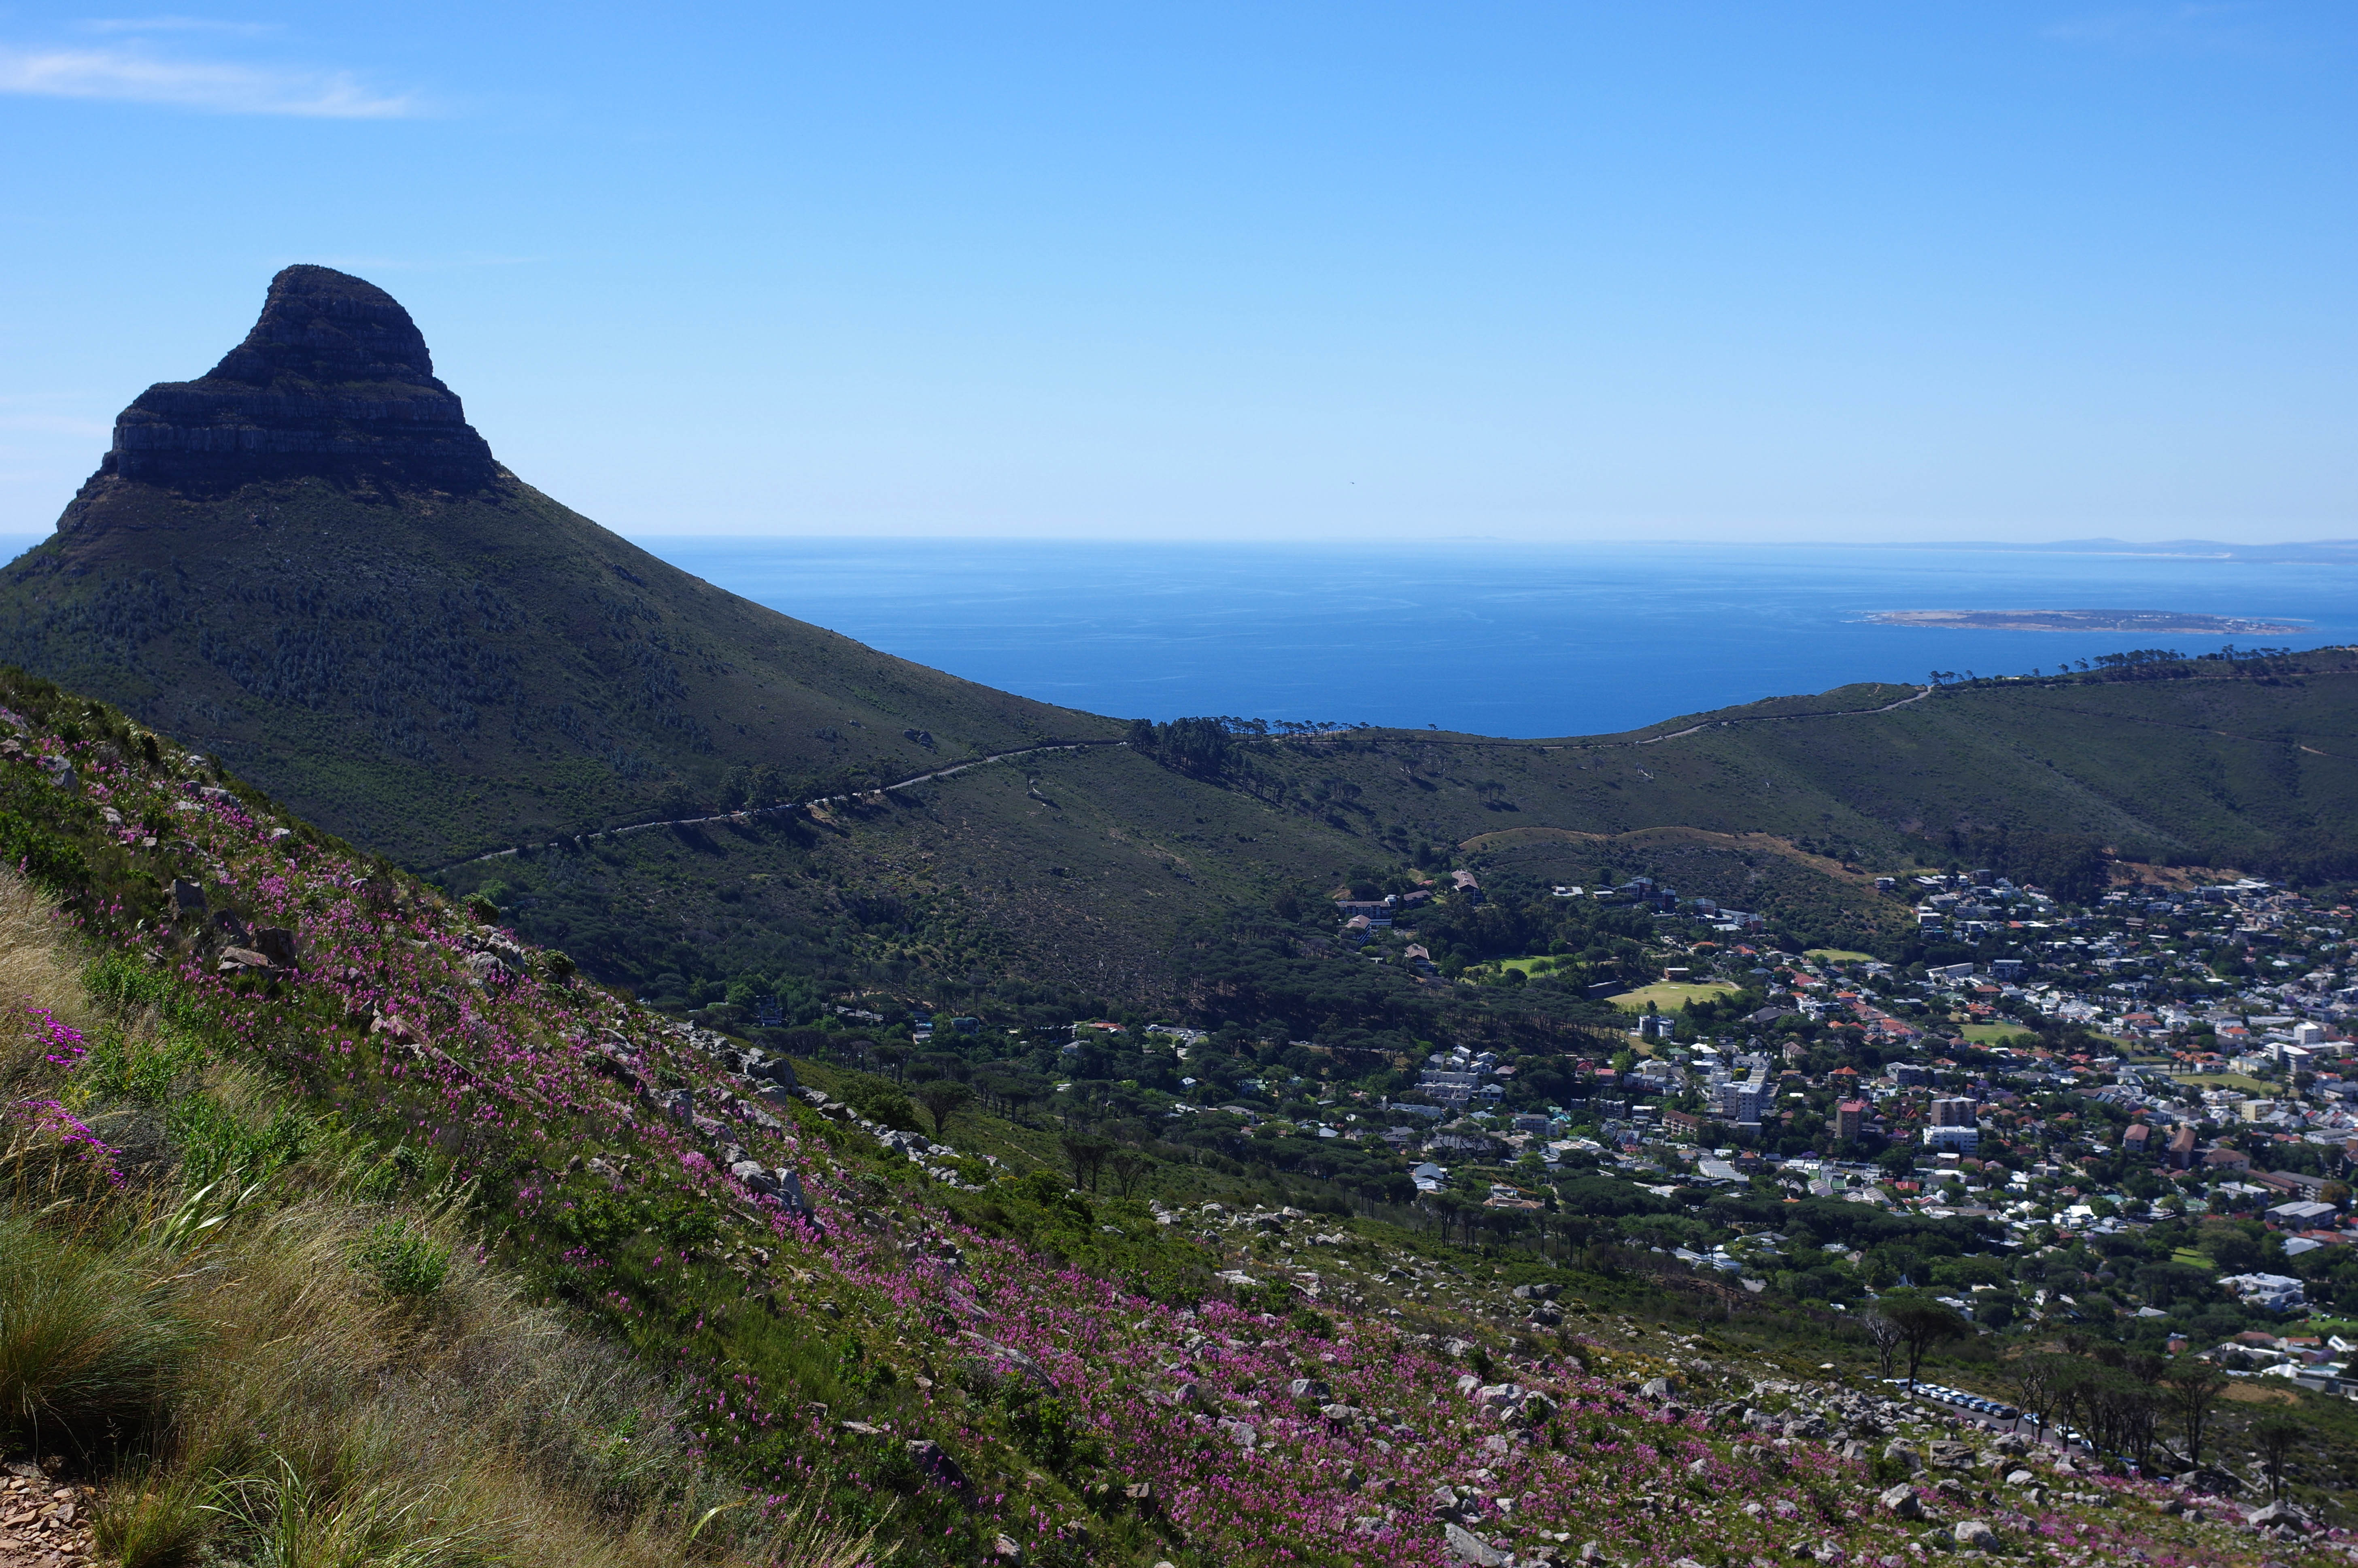 171122_CT_Table mountain1